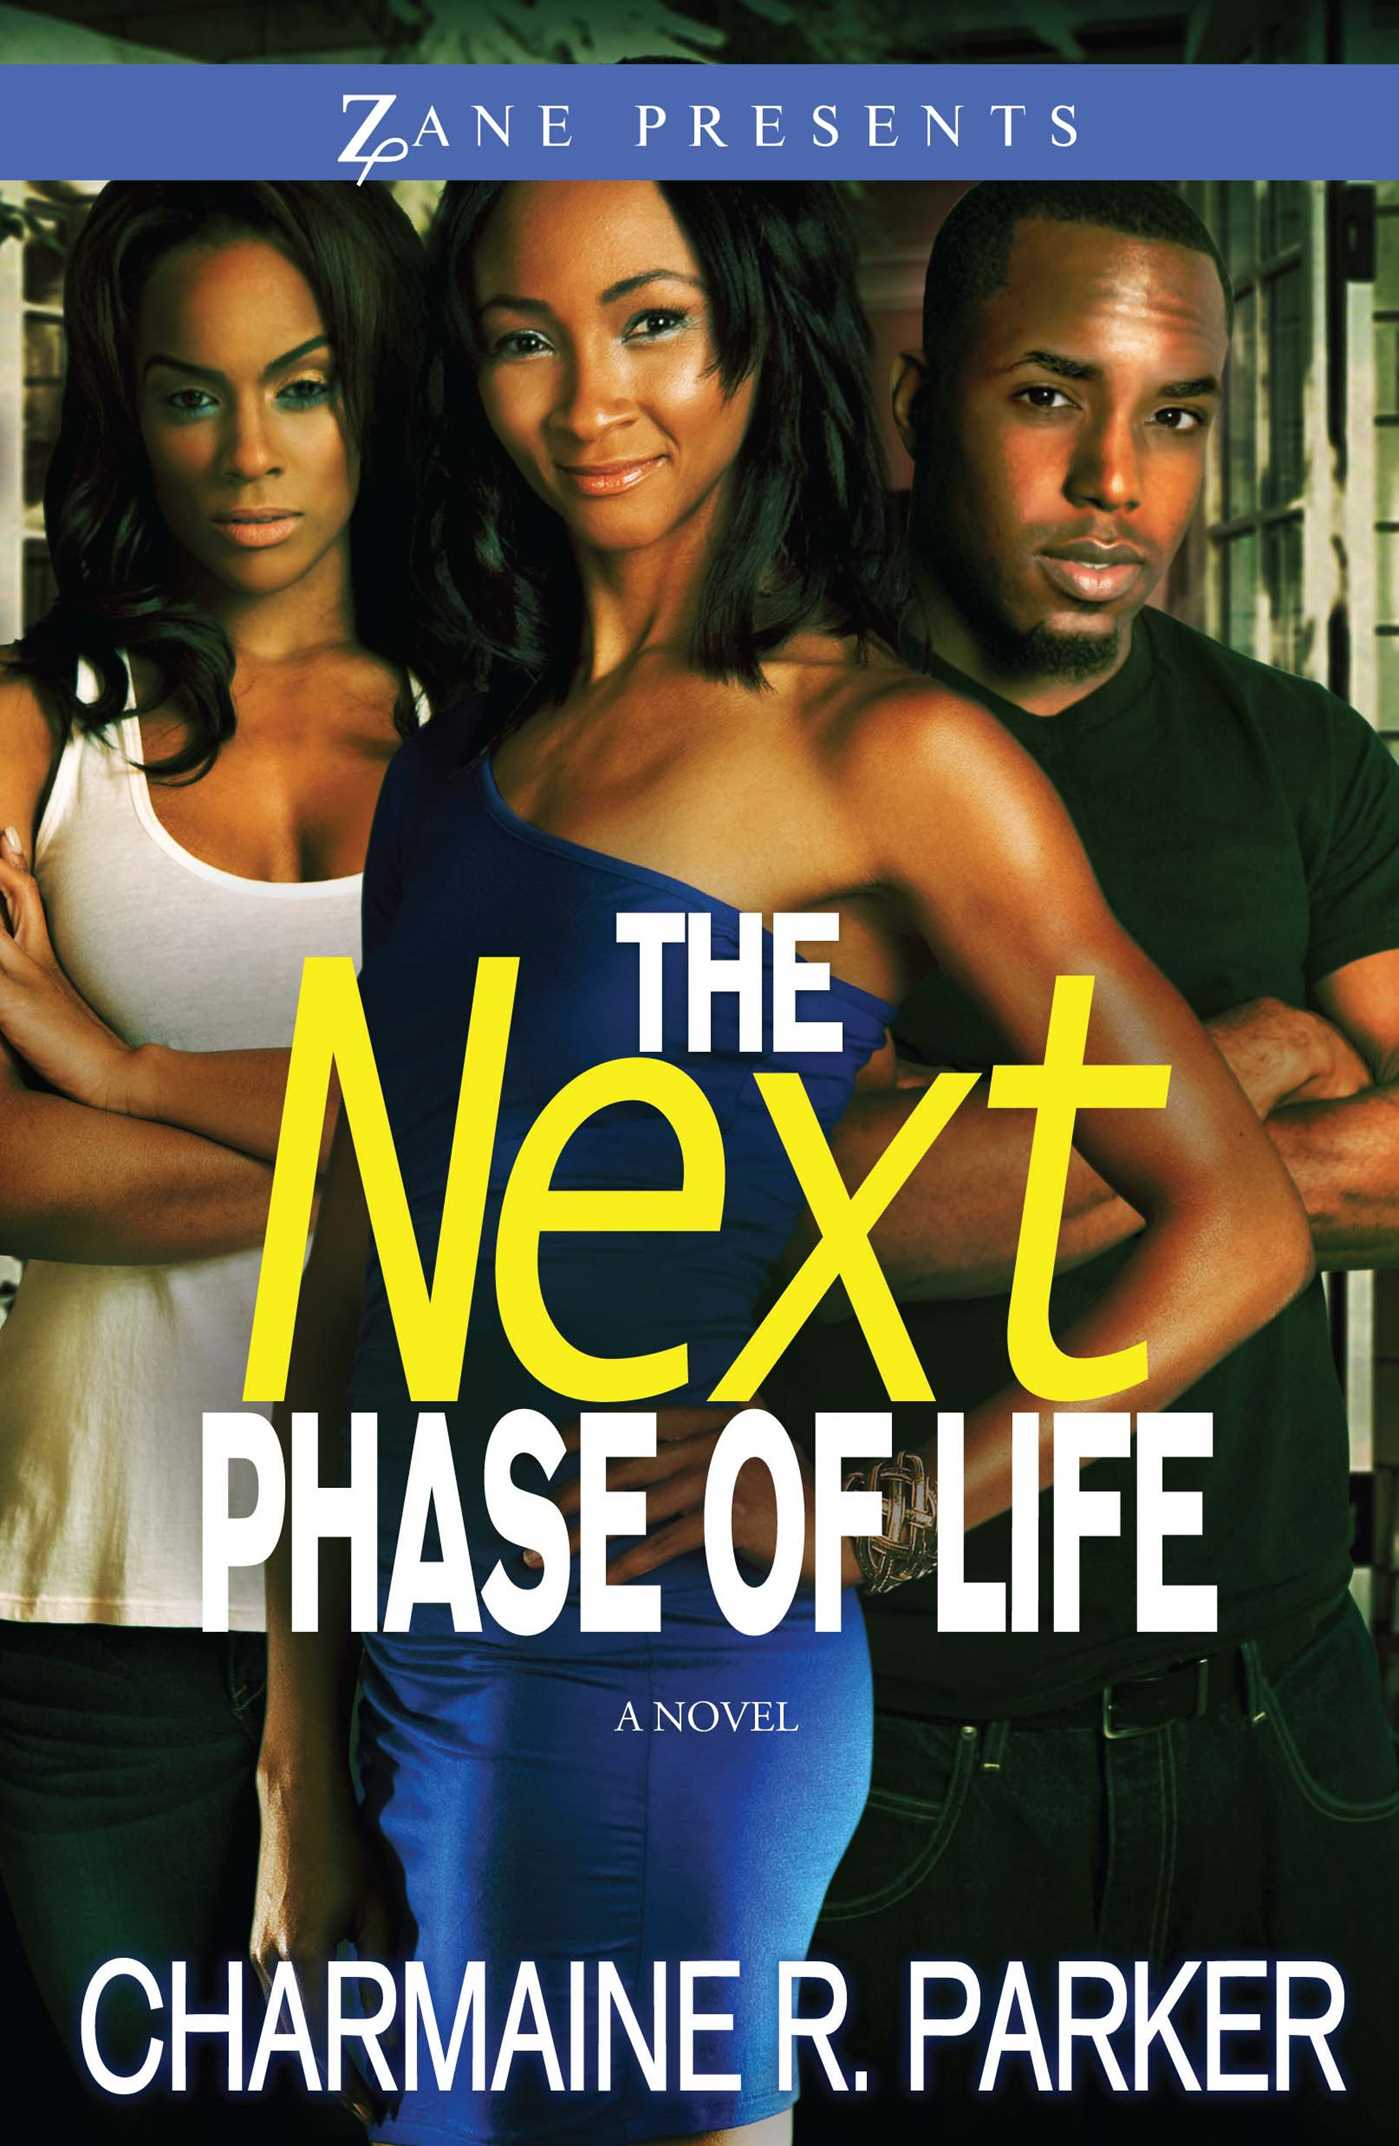 The next phase of life 9781593093723 hr